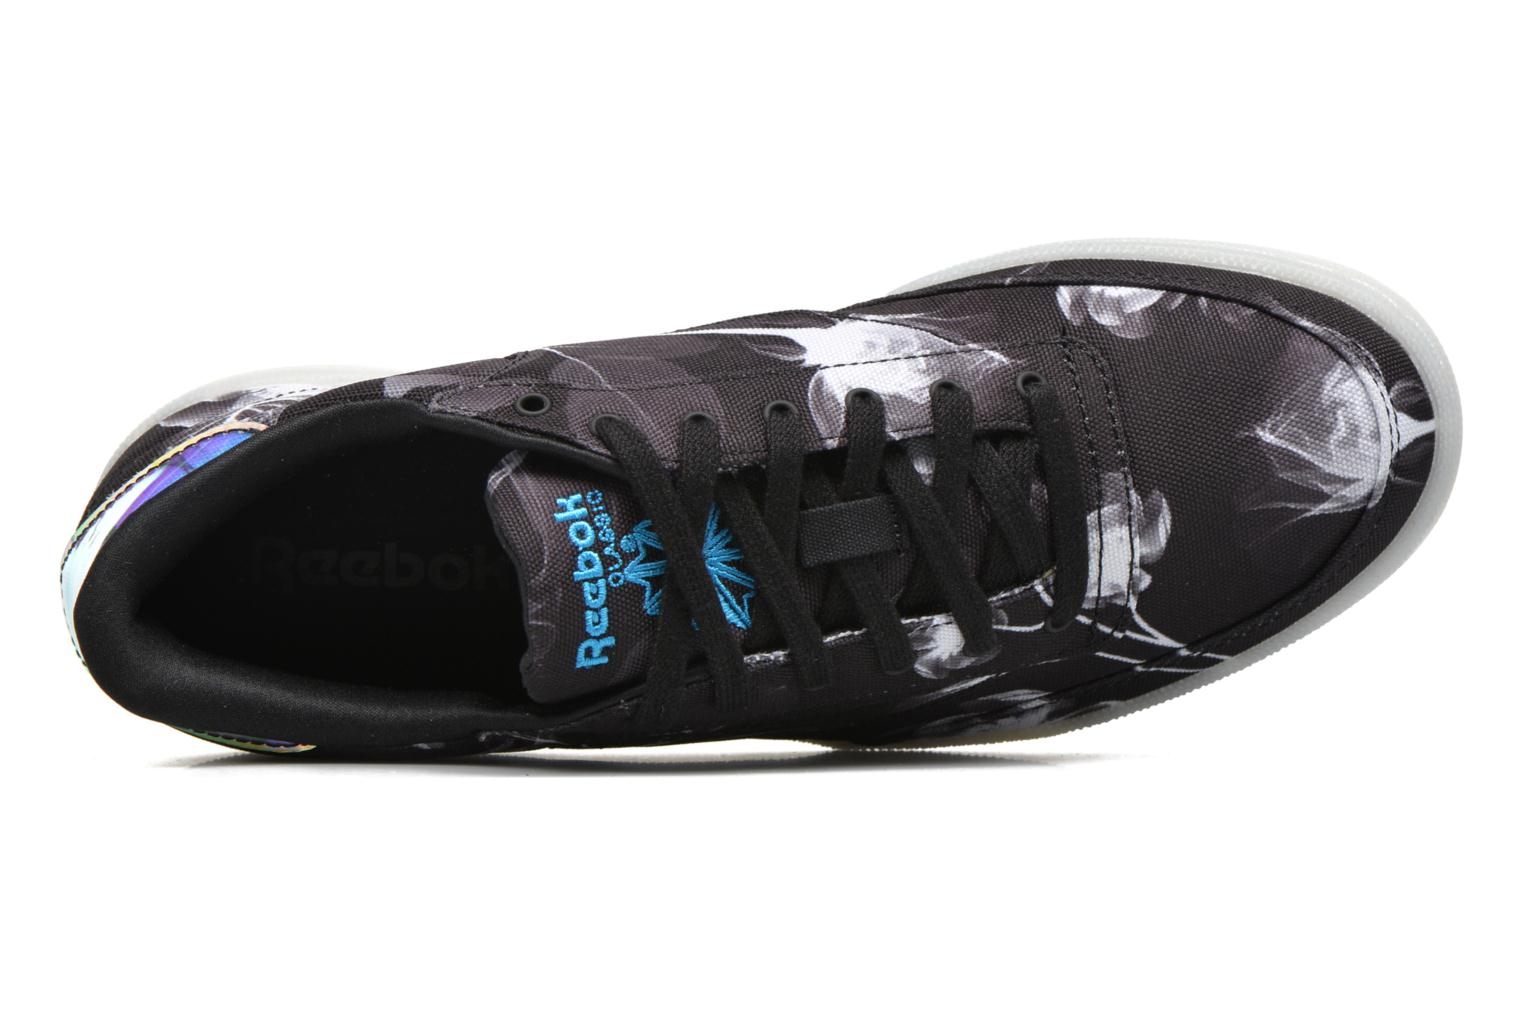 Club C 85 Xray Black/White/Wild Blue/Radiant